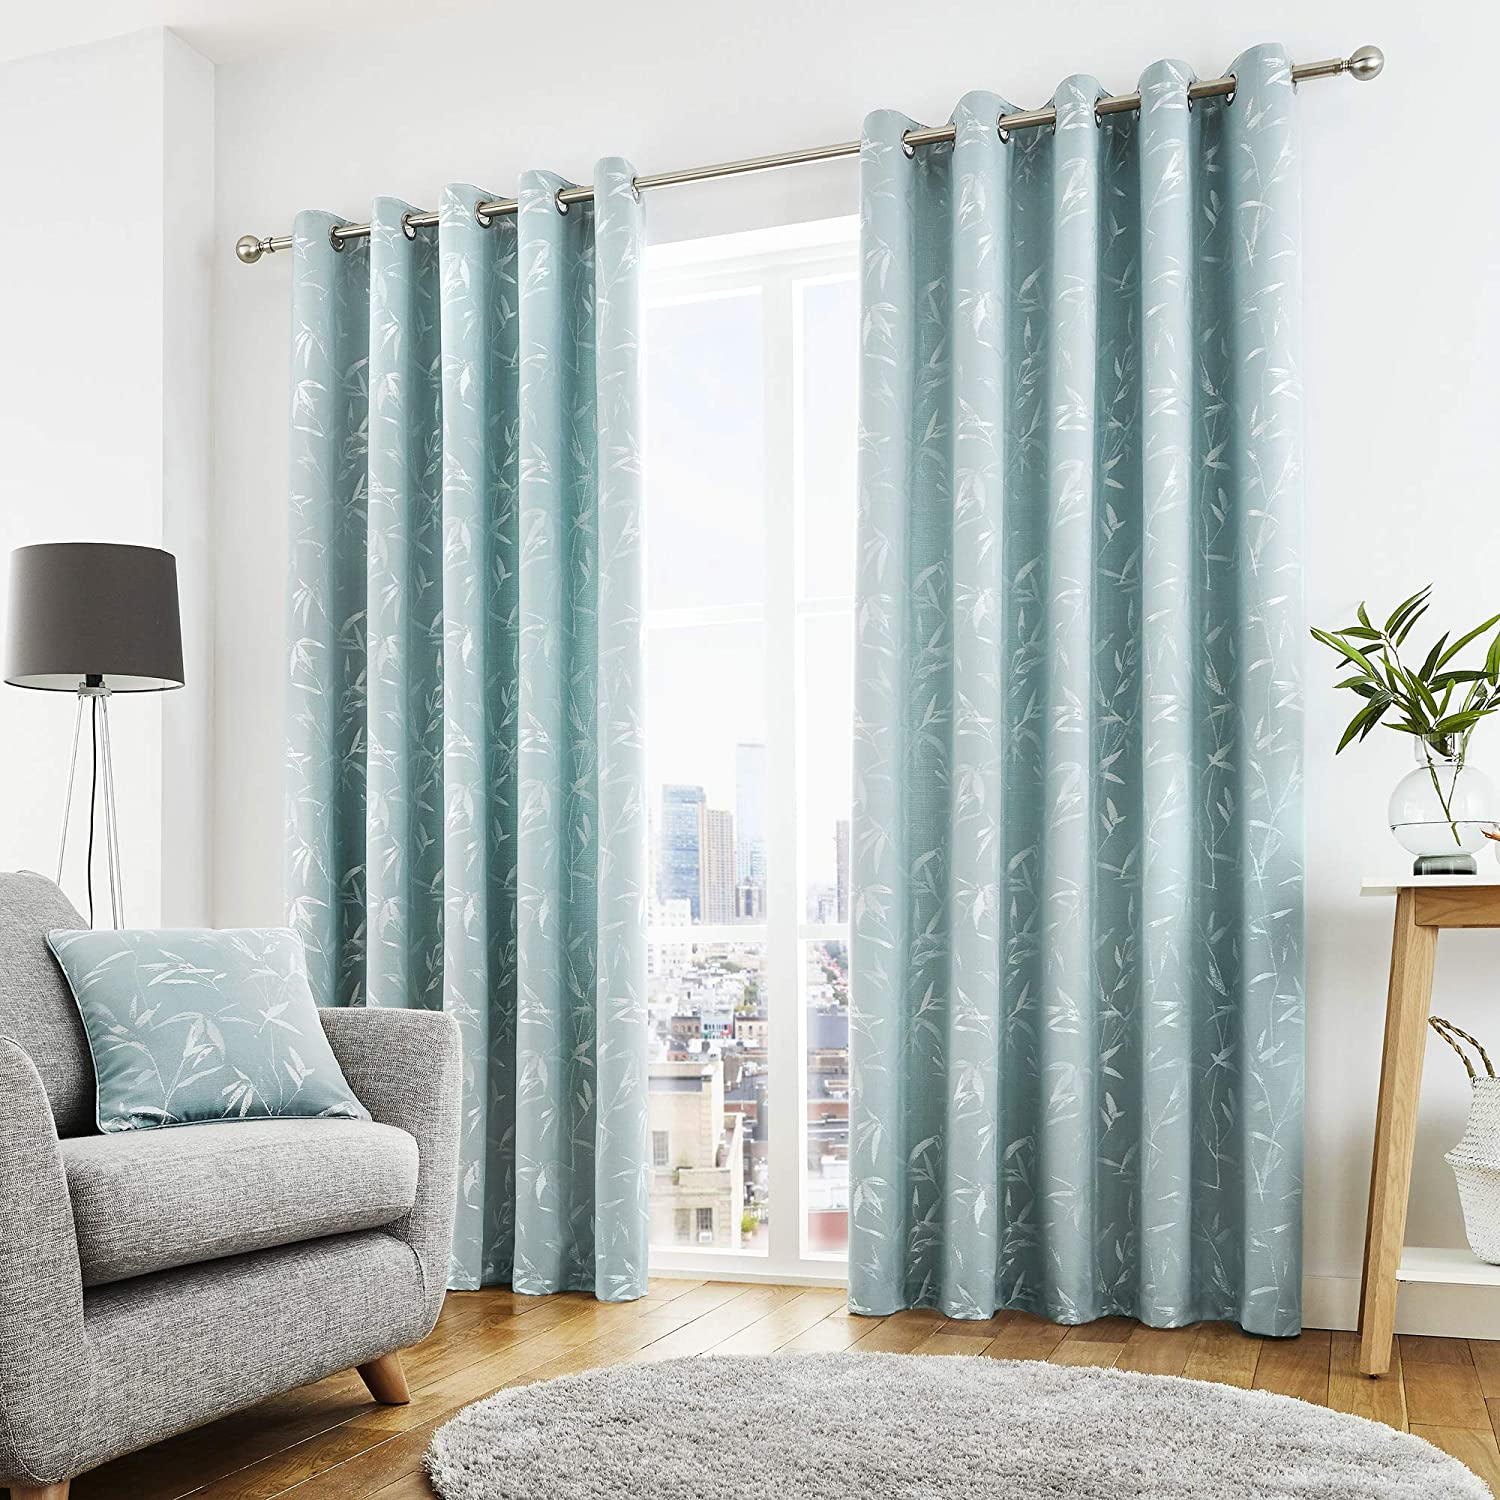 Curtina - Sagano - Ready Made Lined Eyelet Curtains - 66  Width x 54  Drop (168 x 137cm) in Duck Egg bluee